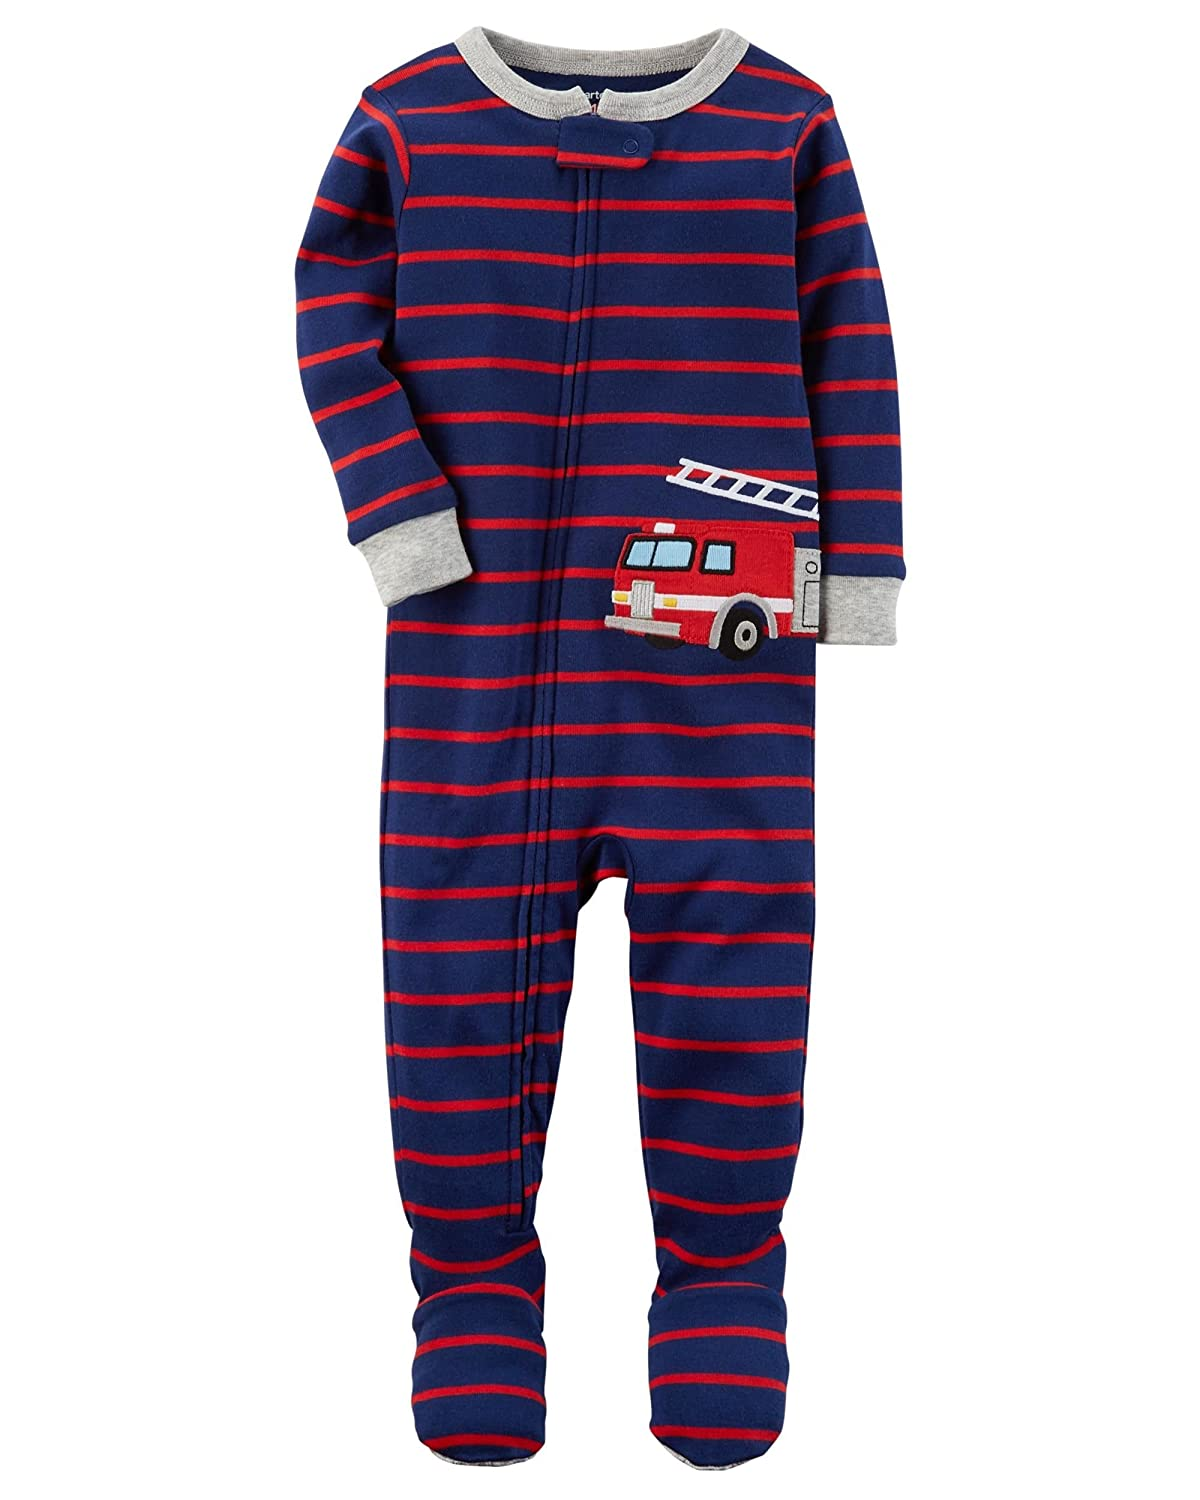 Carter's Baby Boys' 2T 5T One Piece Snug Fit Cotton Pajamas 2T Red Firetruck